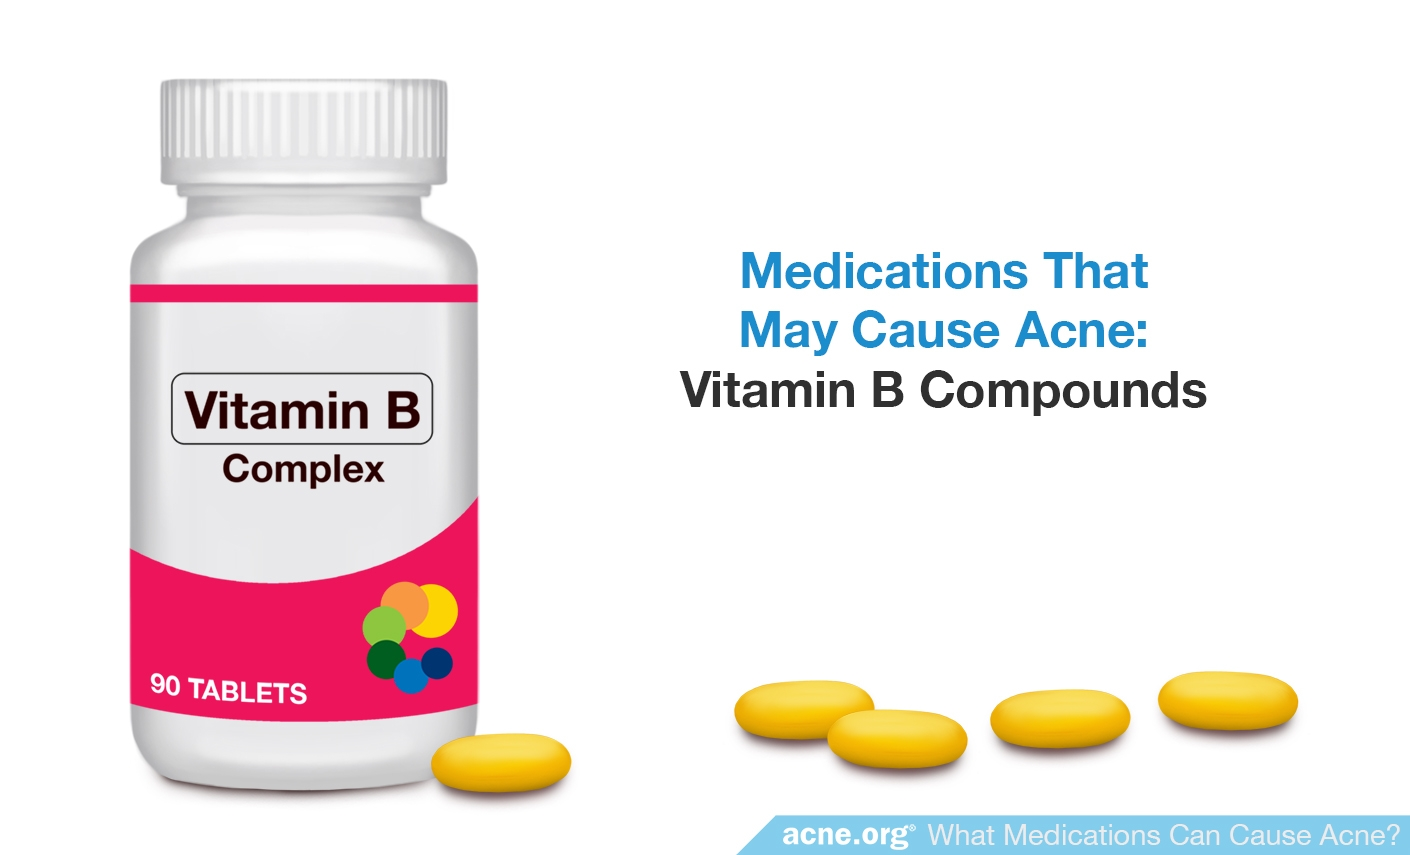 Vitamin B Compounds - May Cause Acne